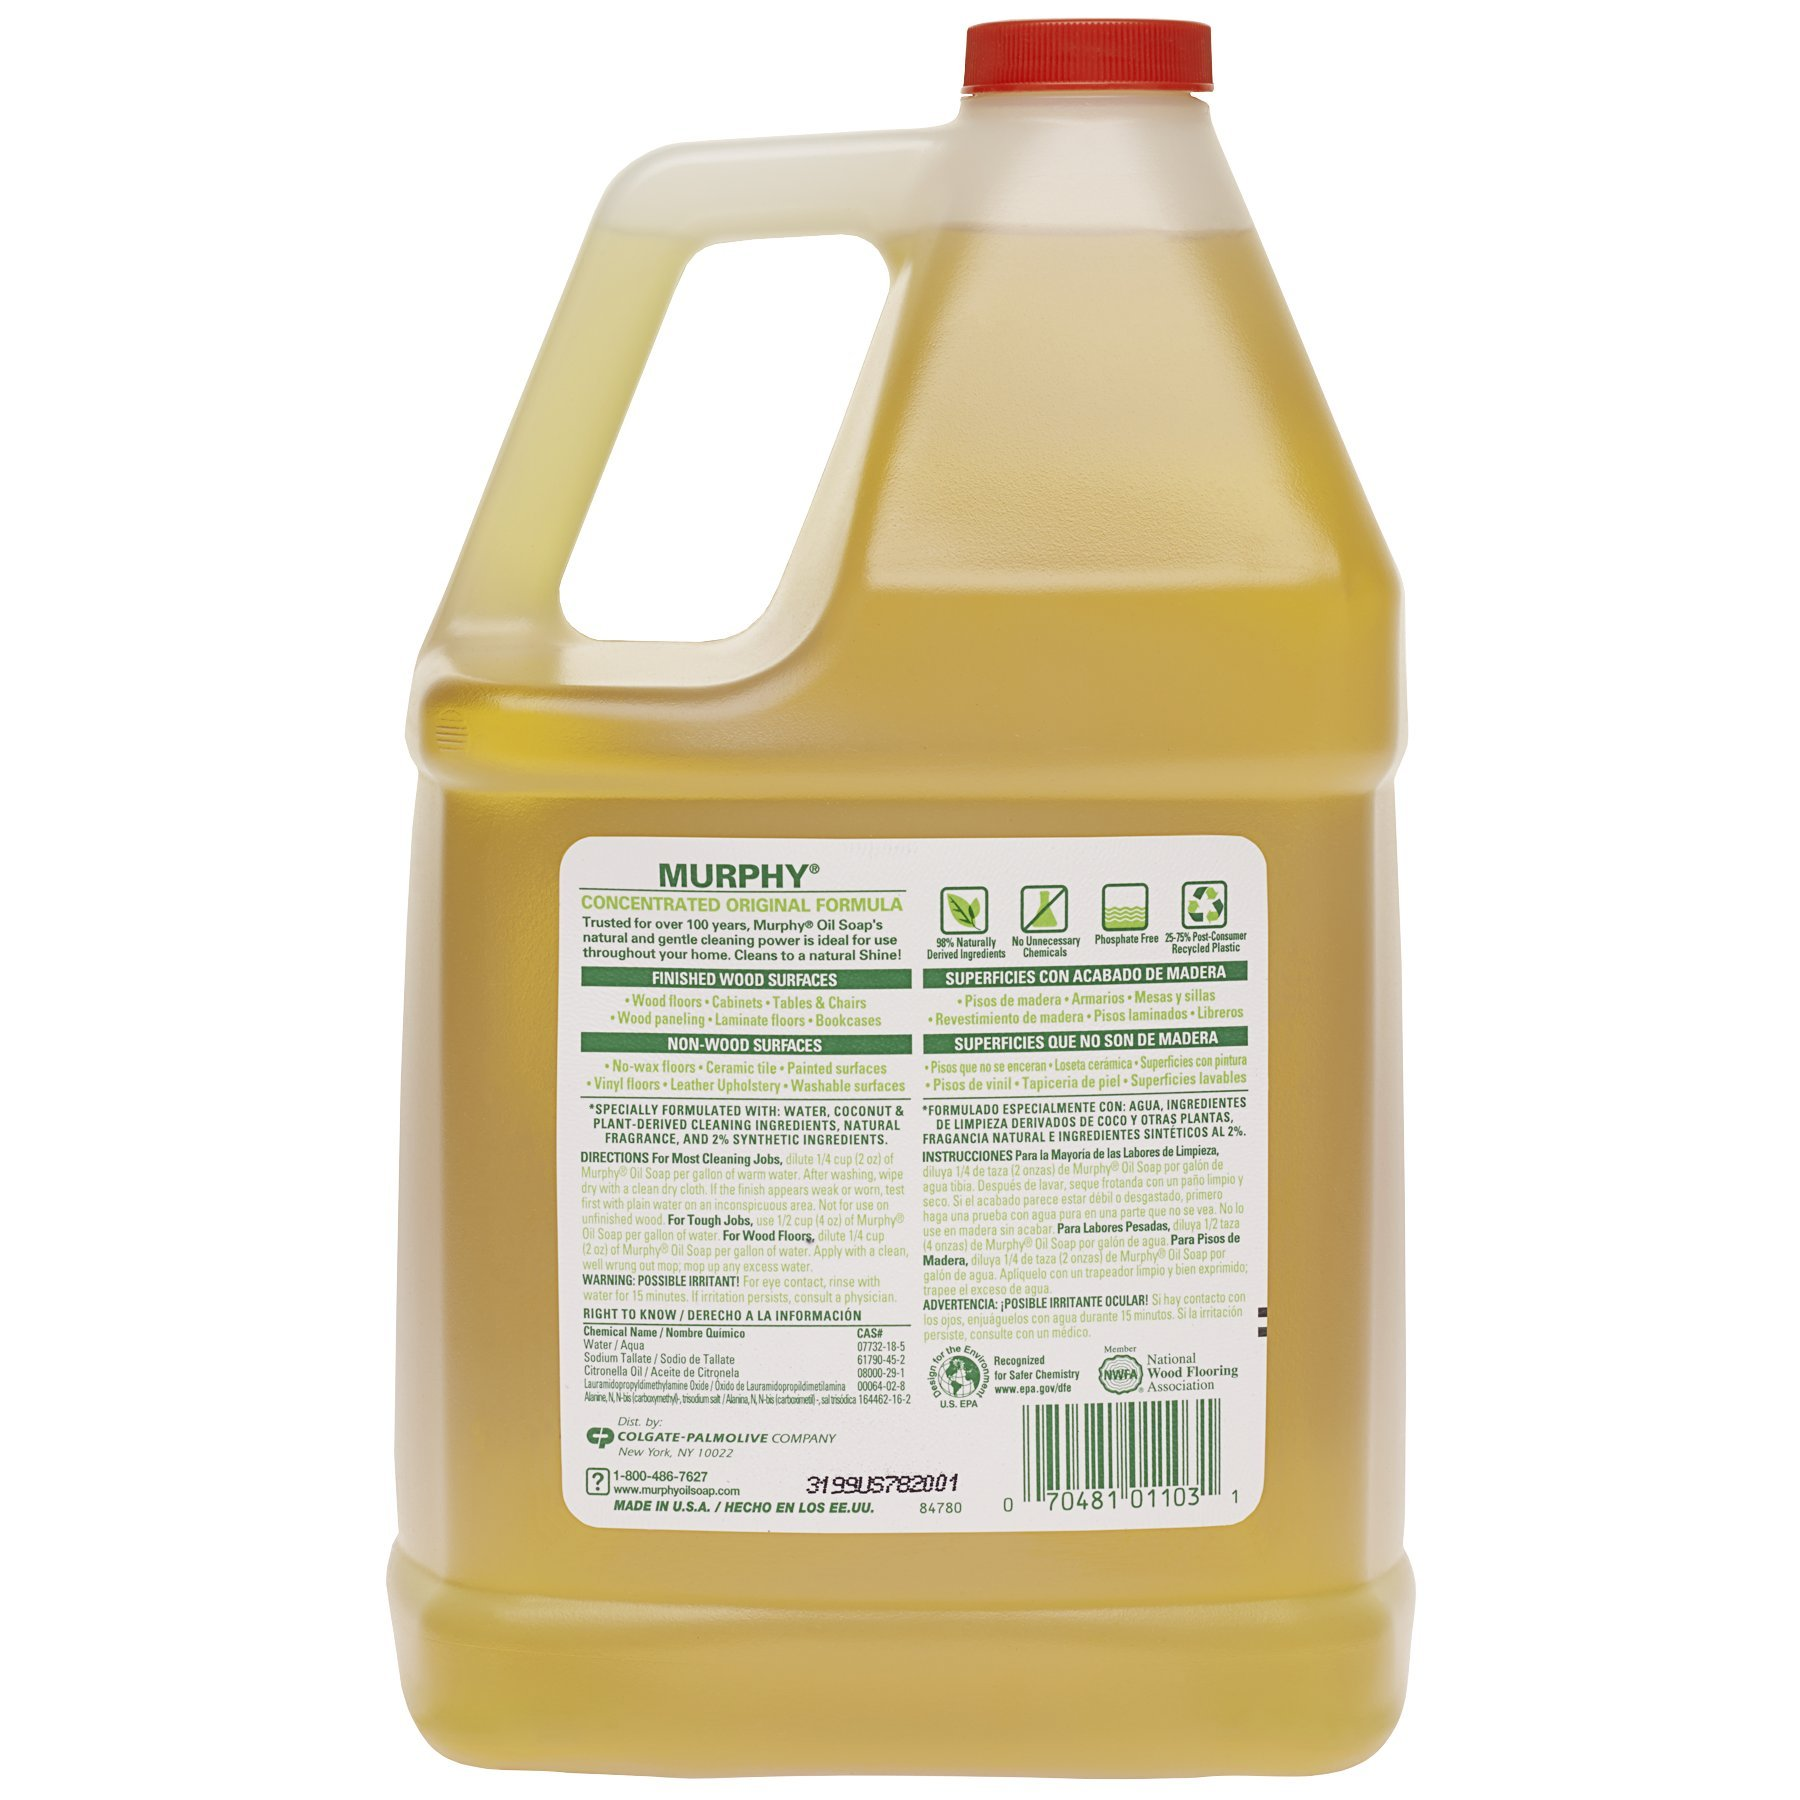 MURPHY OIL SOAP Wood Cleaner, Original, Concentrated Formula, Floor Cleaner, Multi-Use Wood Cleaner, Finished Surface Cleaner, 128 Fluid Ounce (US05480A) by Murphy Oil (Image #2)